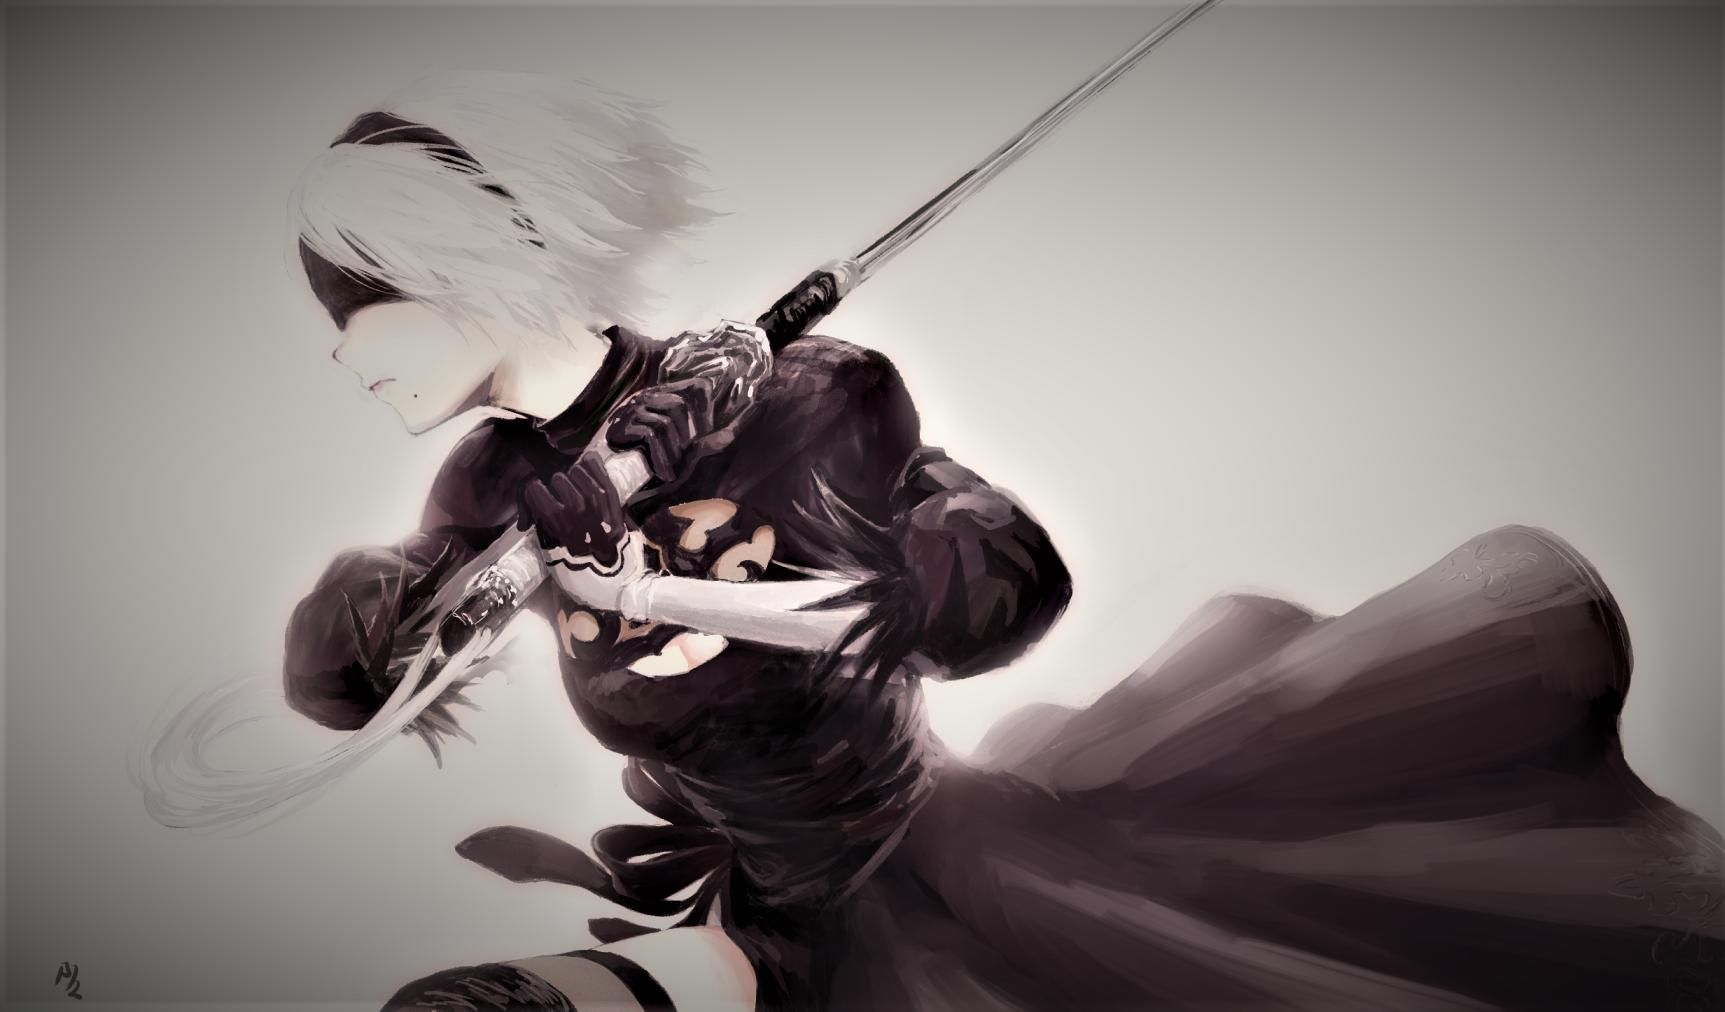 Hd wallpaper nier automata - Yorha No 2 Type B 1725x1012 Hd Wallpaper From Gallsource Com Nier Automatahd Wallpaper